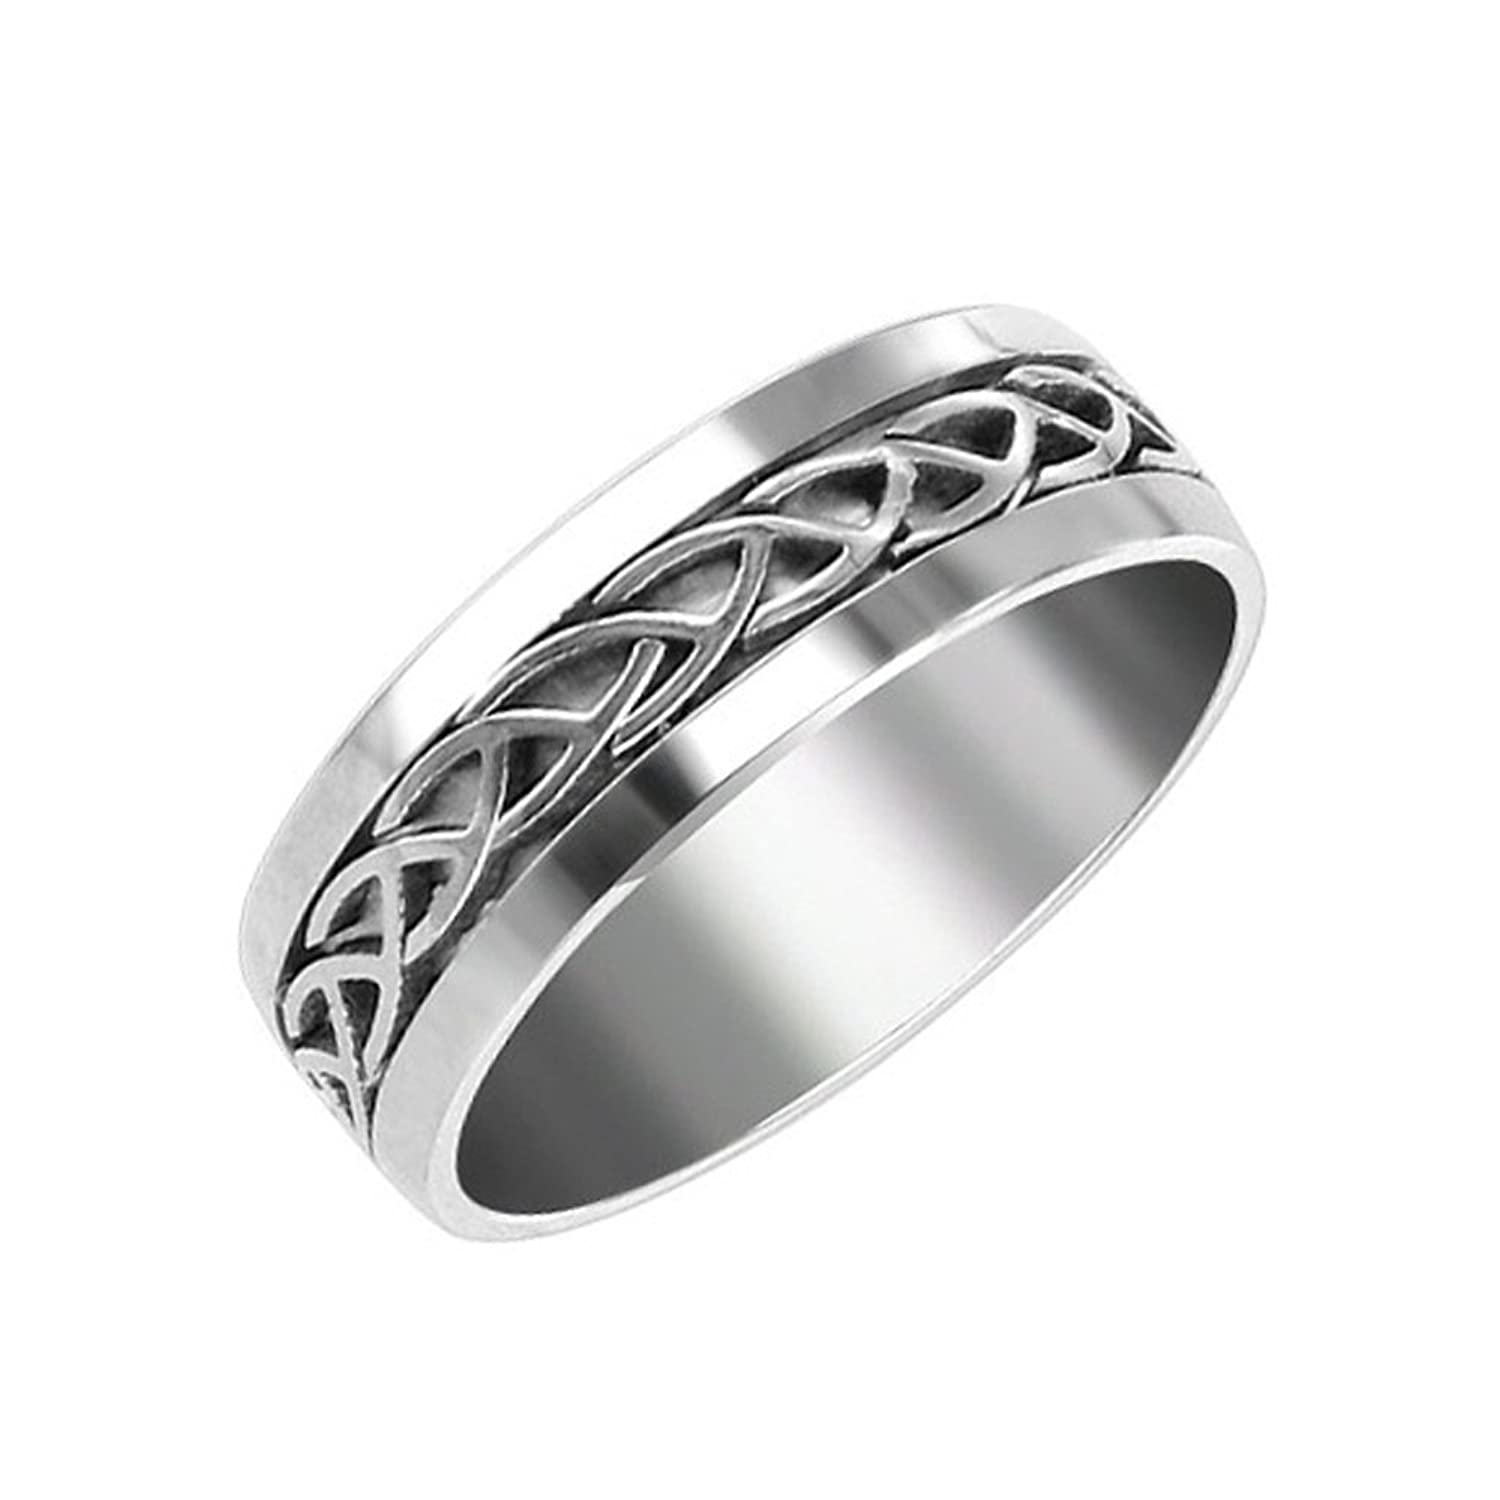 for rings celtic on popular been gaelic have figures bands very a wedding long engagement time pin